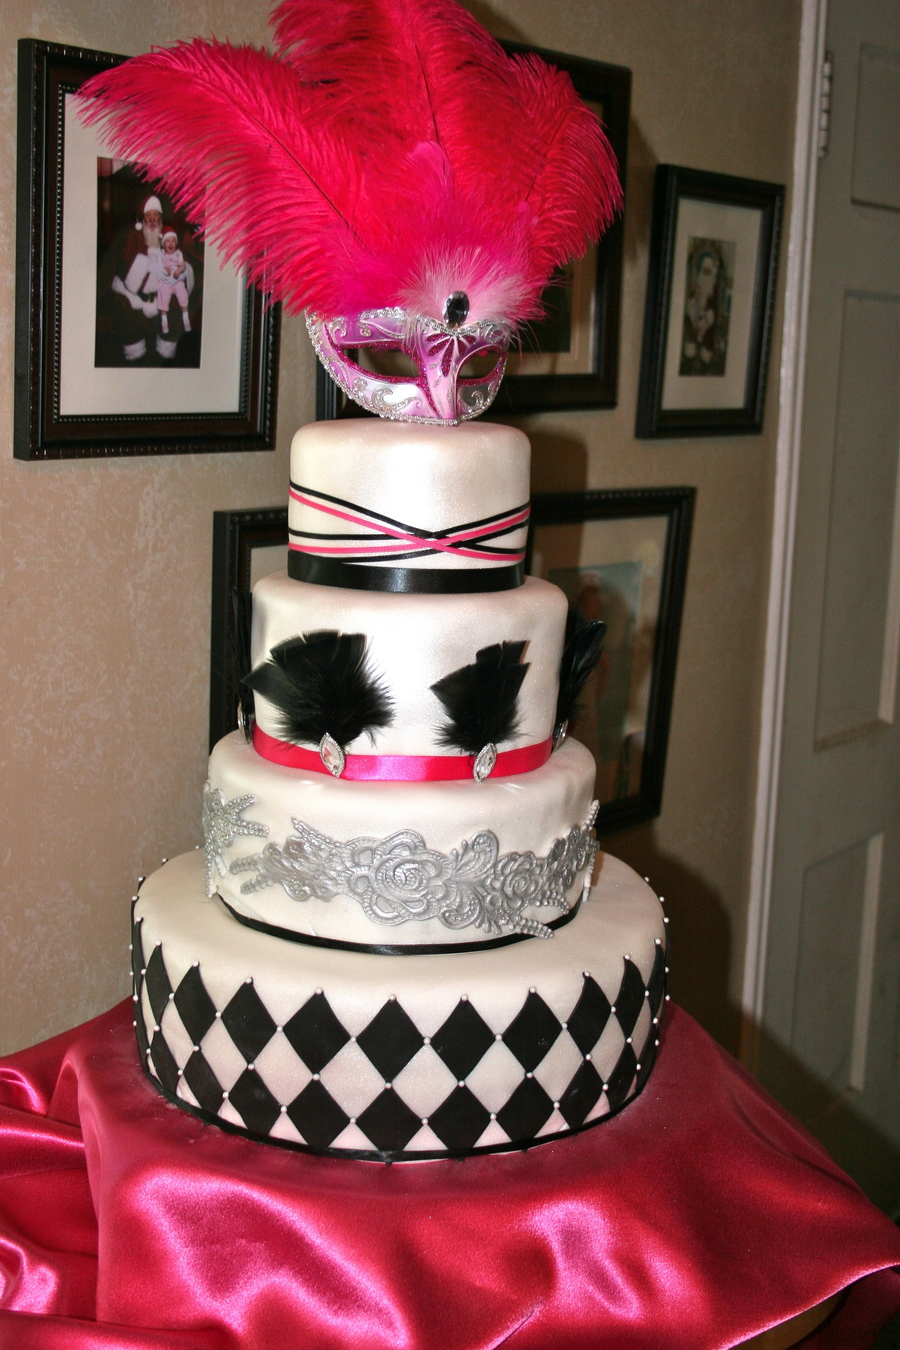 Cake Decorating Ideas For Quinceanera : Masquerade Theme, La Quinceanera Cake - CakeCentral.com